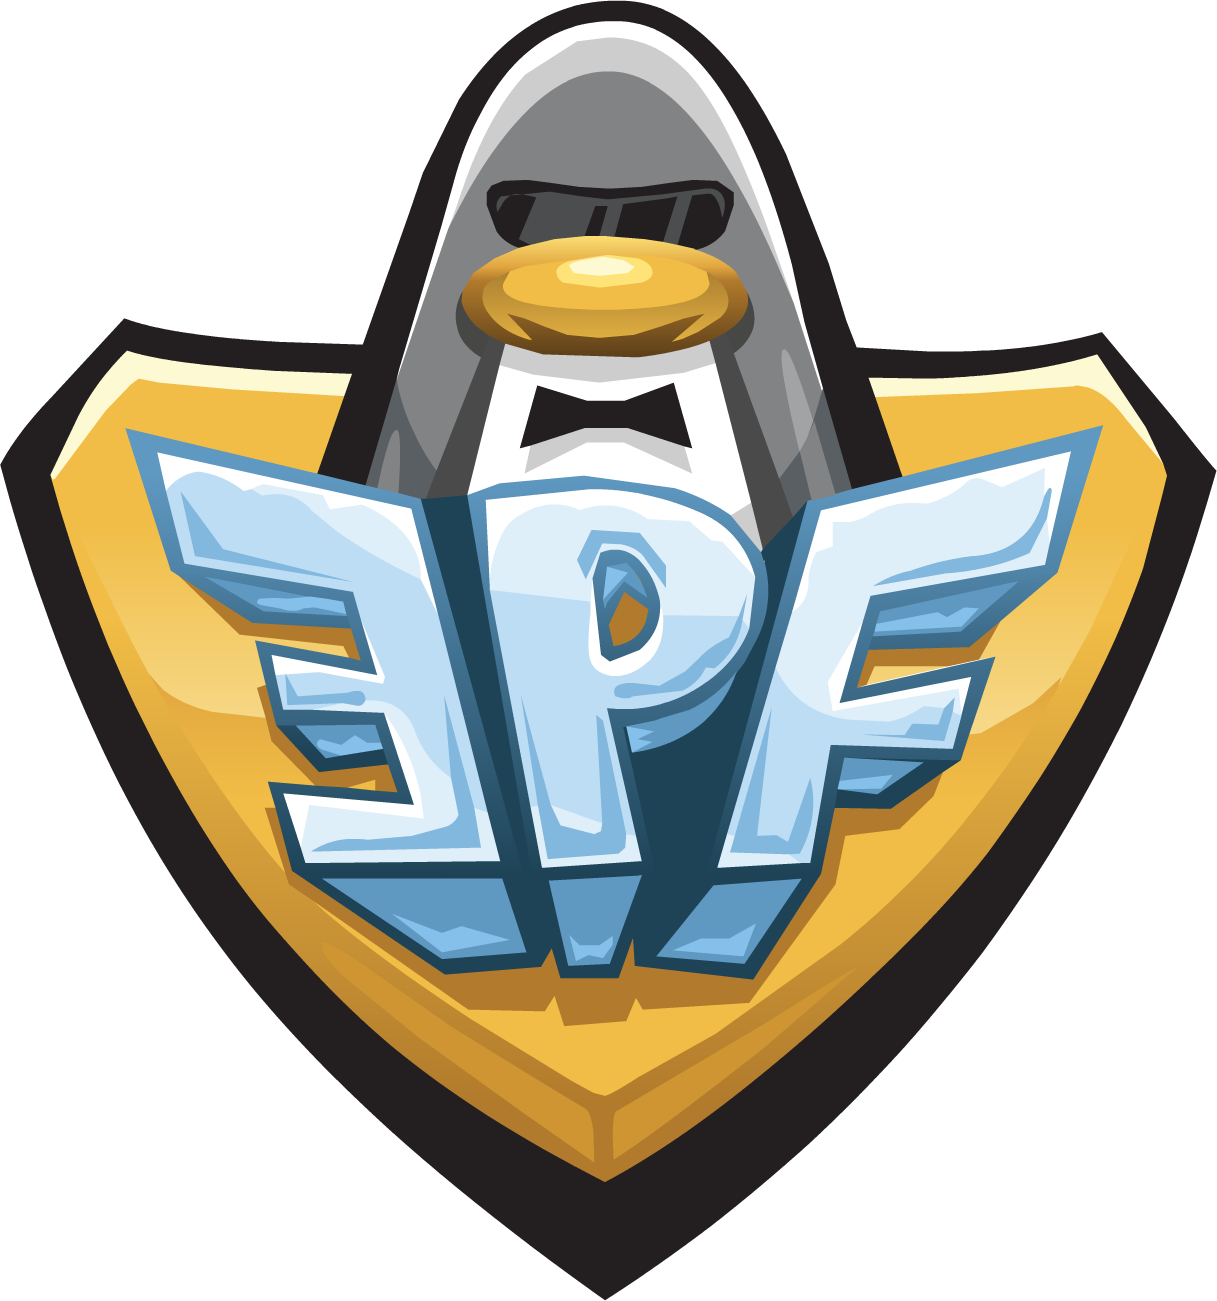 2d50bee447807803a0625aa313c8329d epf logo club pinguin pinterest logos club penguin fuse box at bayanpartner.co